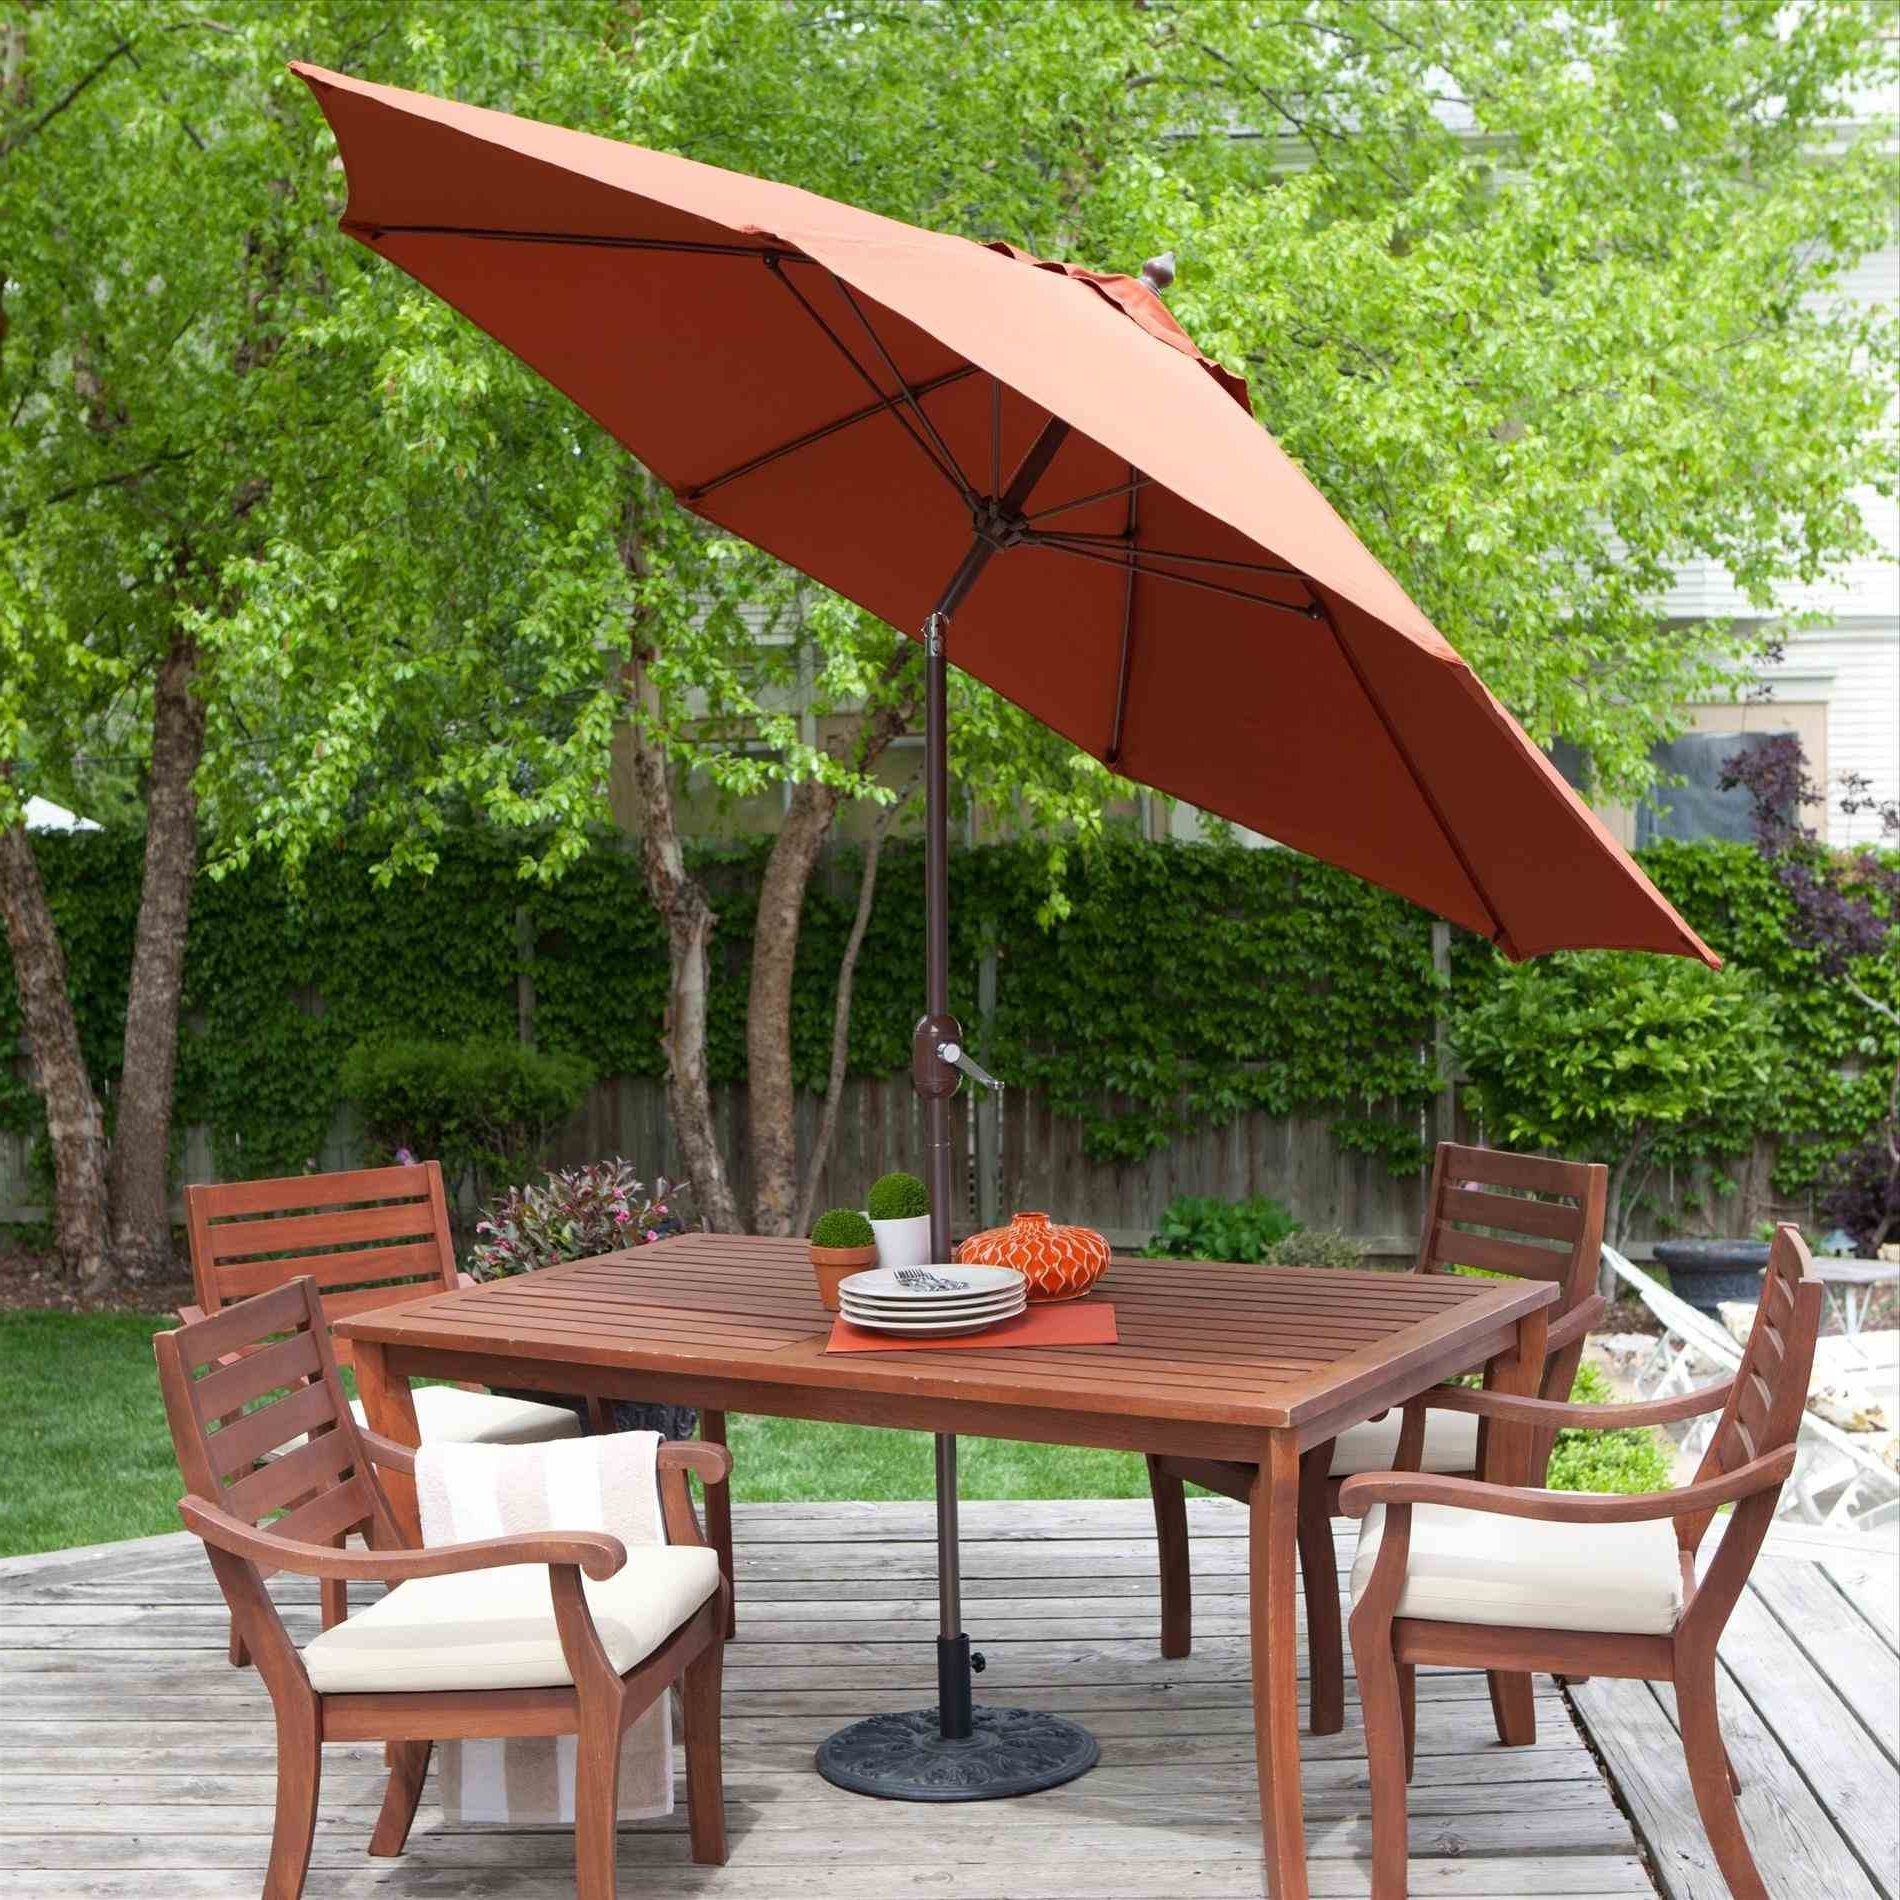 Small Patio Umbrella Part 2 Outdoor Umbrellas – Theestatesga Regarding Most Recently Released Small Patio Umbrellas (View 13 of 20)